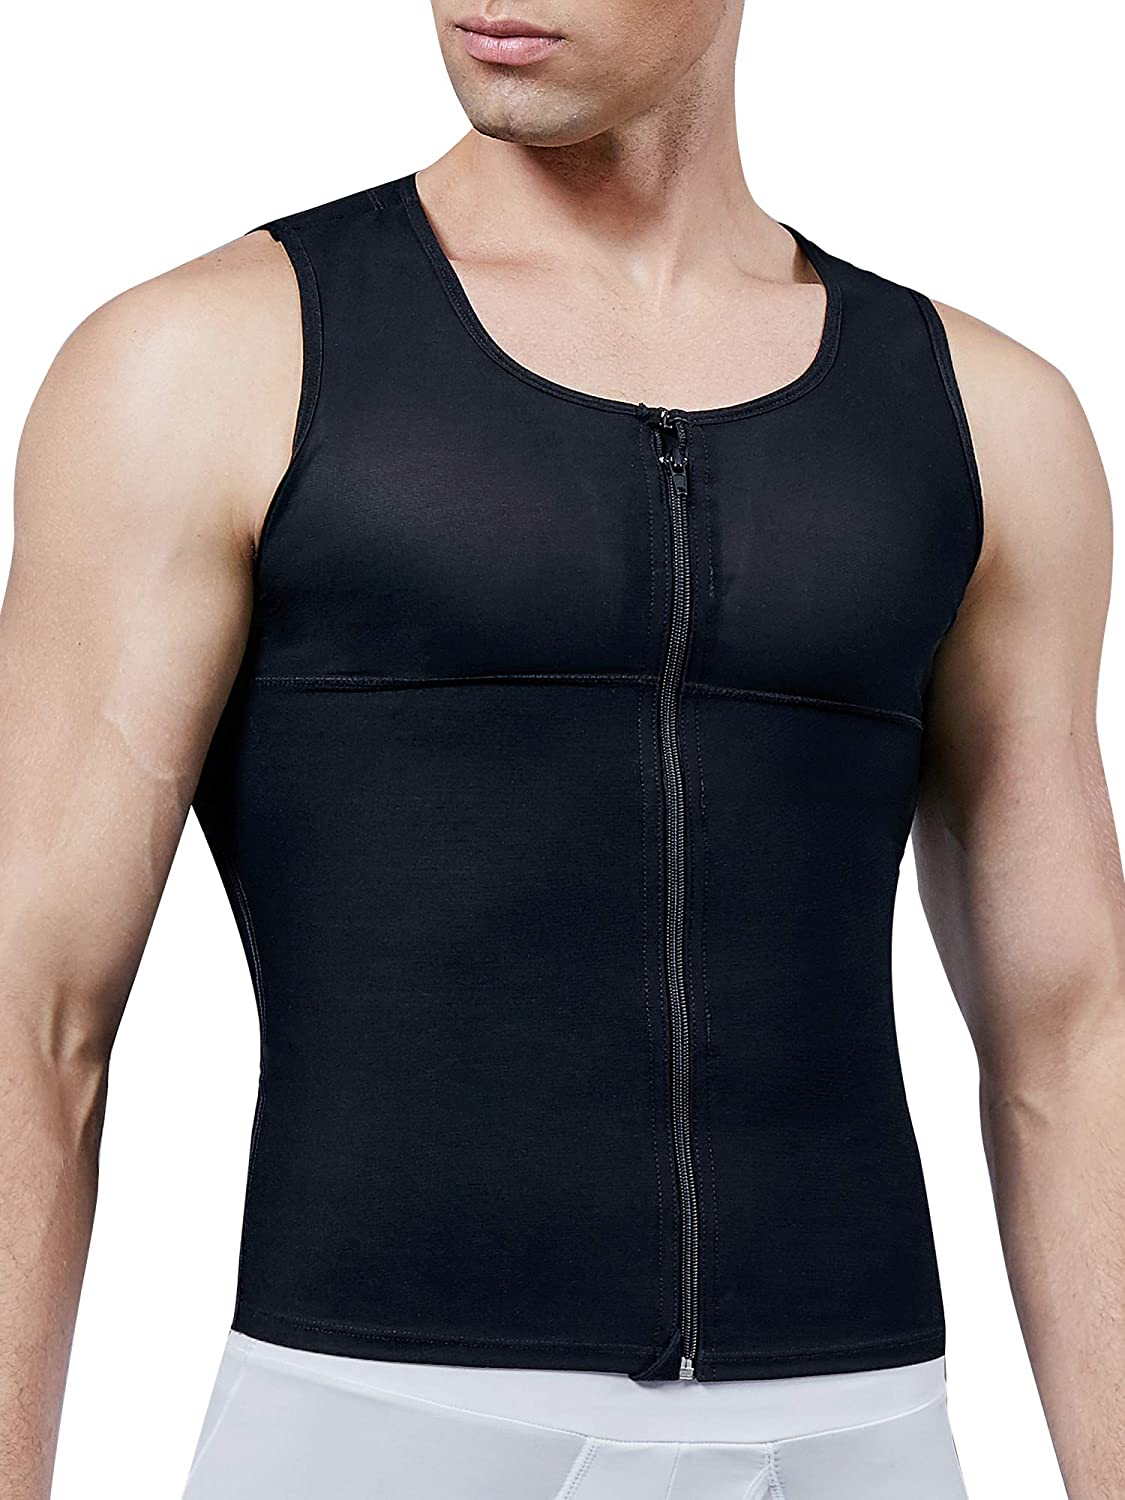 MISS Ranking TOP4 MOLY Compression Shirts for Men Hide to Gynecomastia Moobs Max 60% OFF